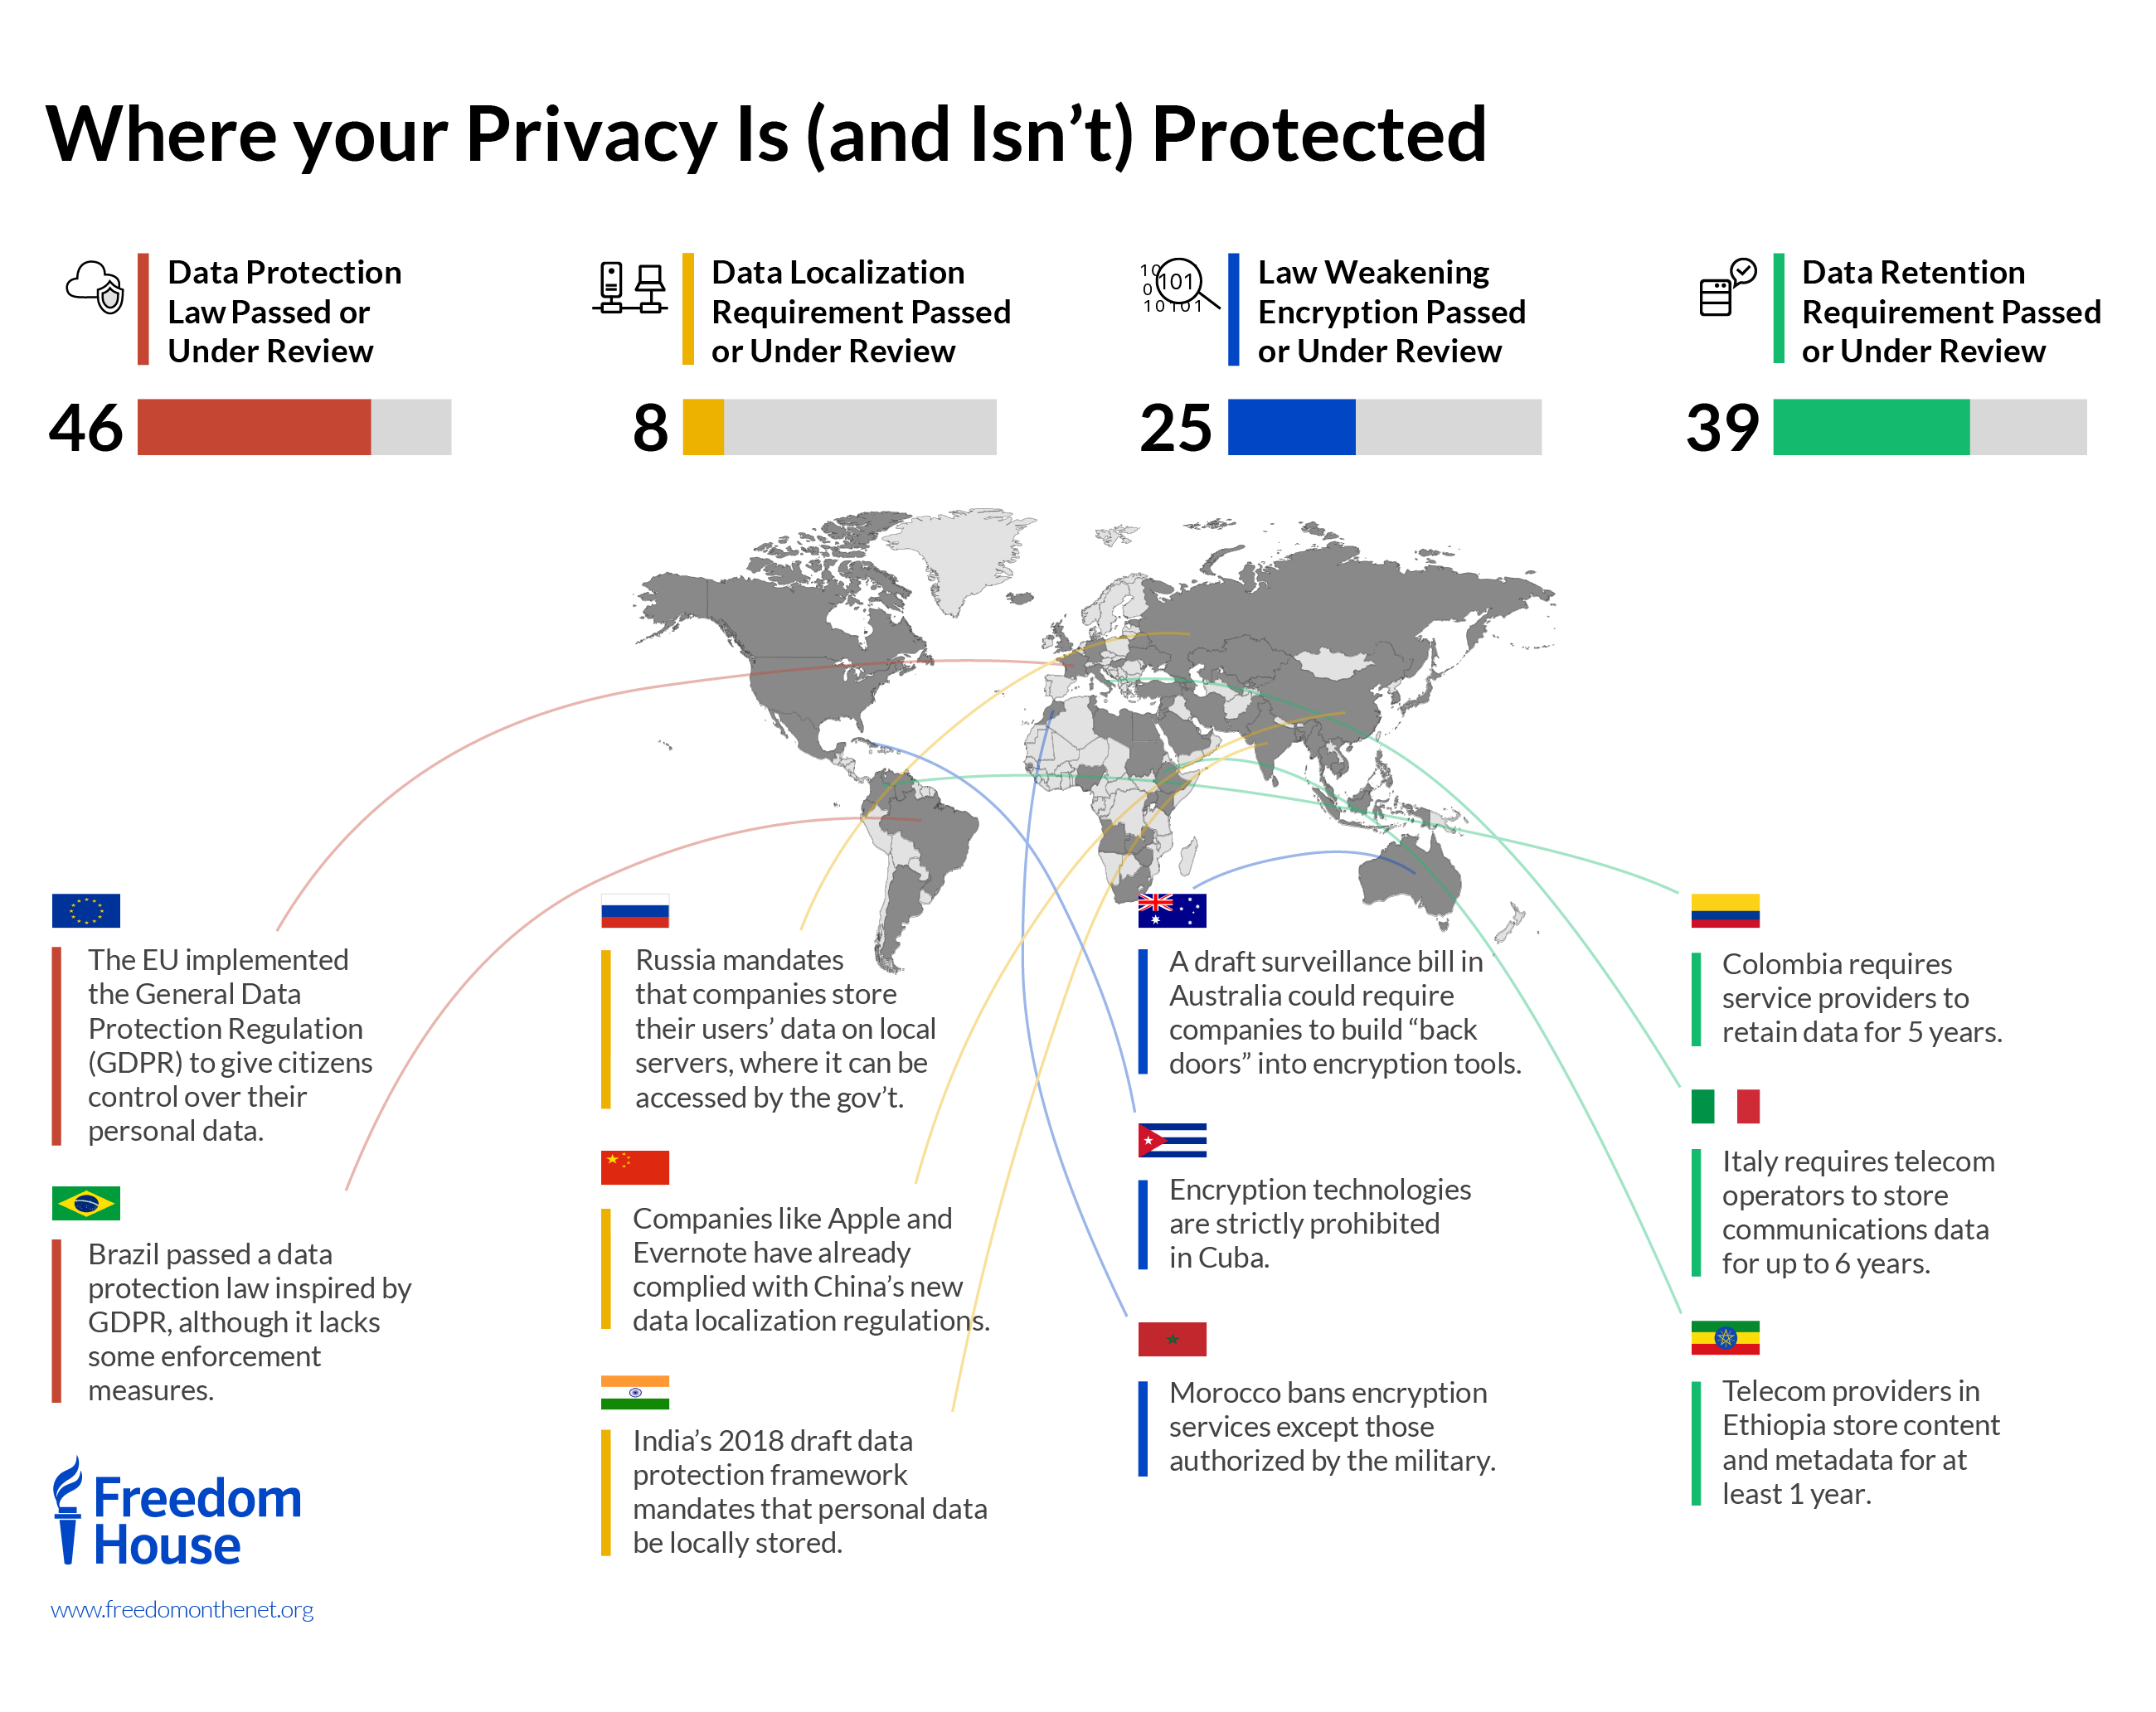 Data privacy and protection around the world